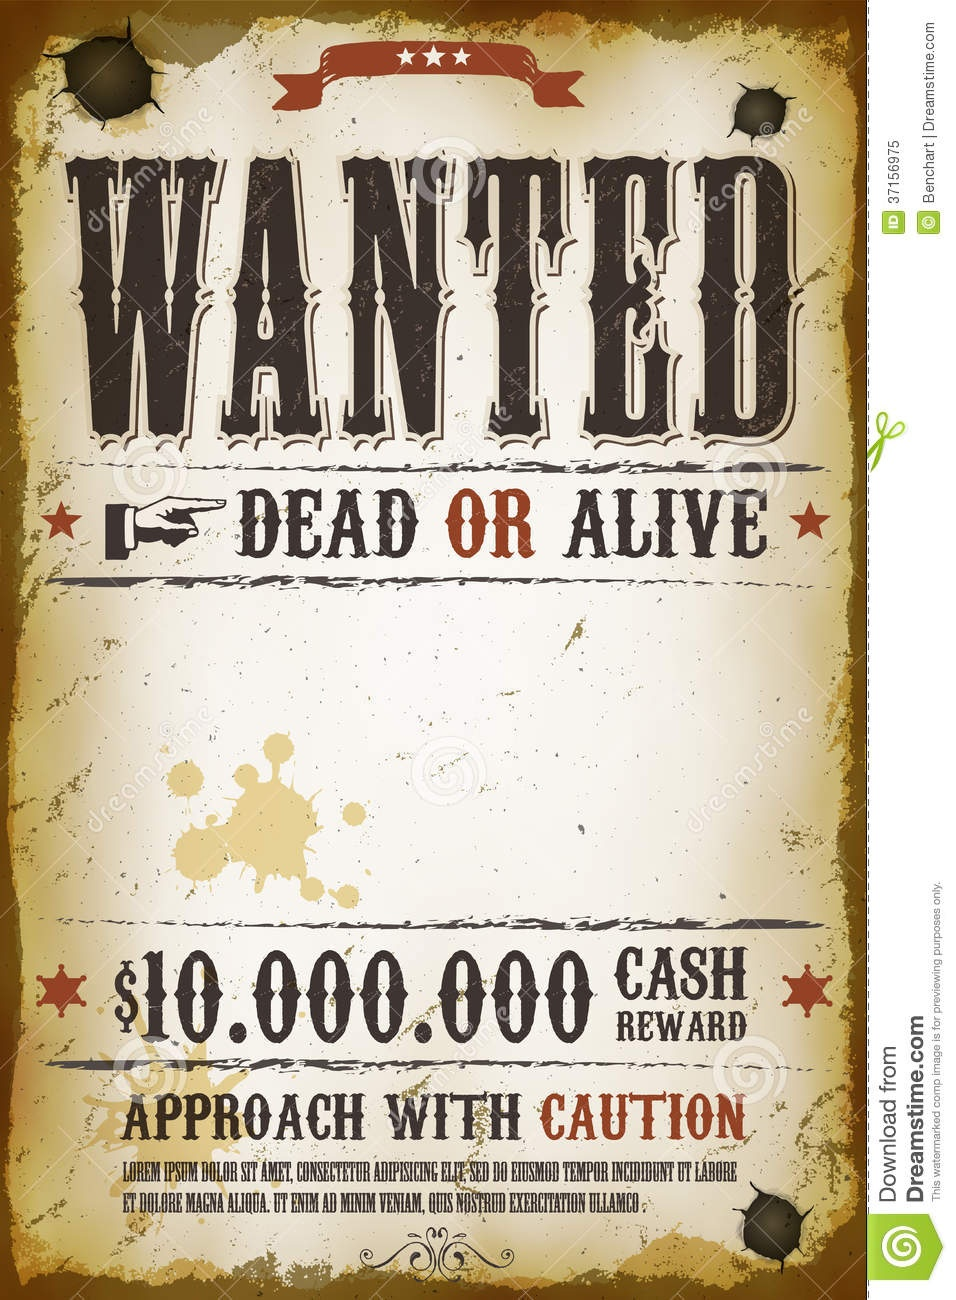 Wanted Vintage Western Poster Stock Vector - Illustration Of Brown - Free Printable Wanted Poster Old West